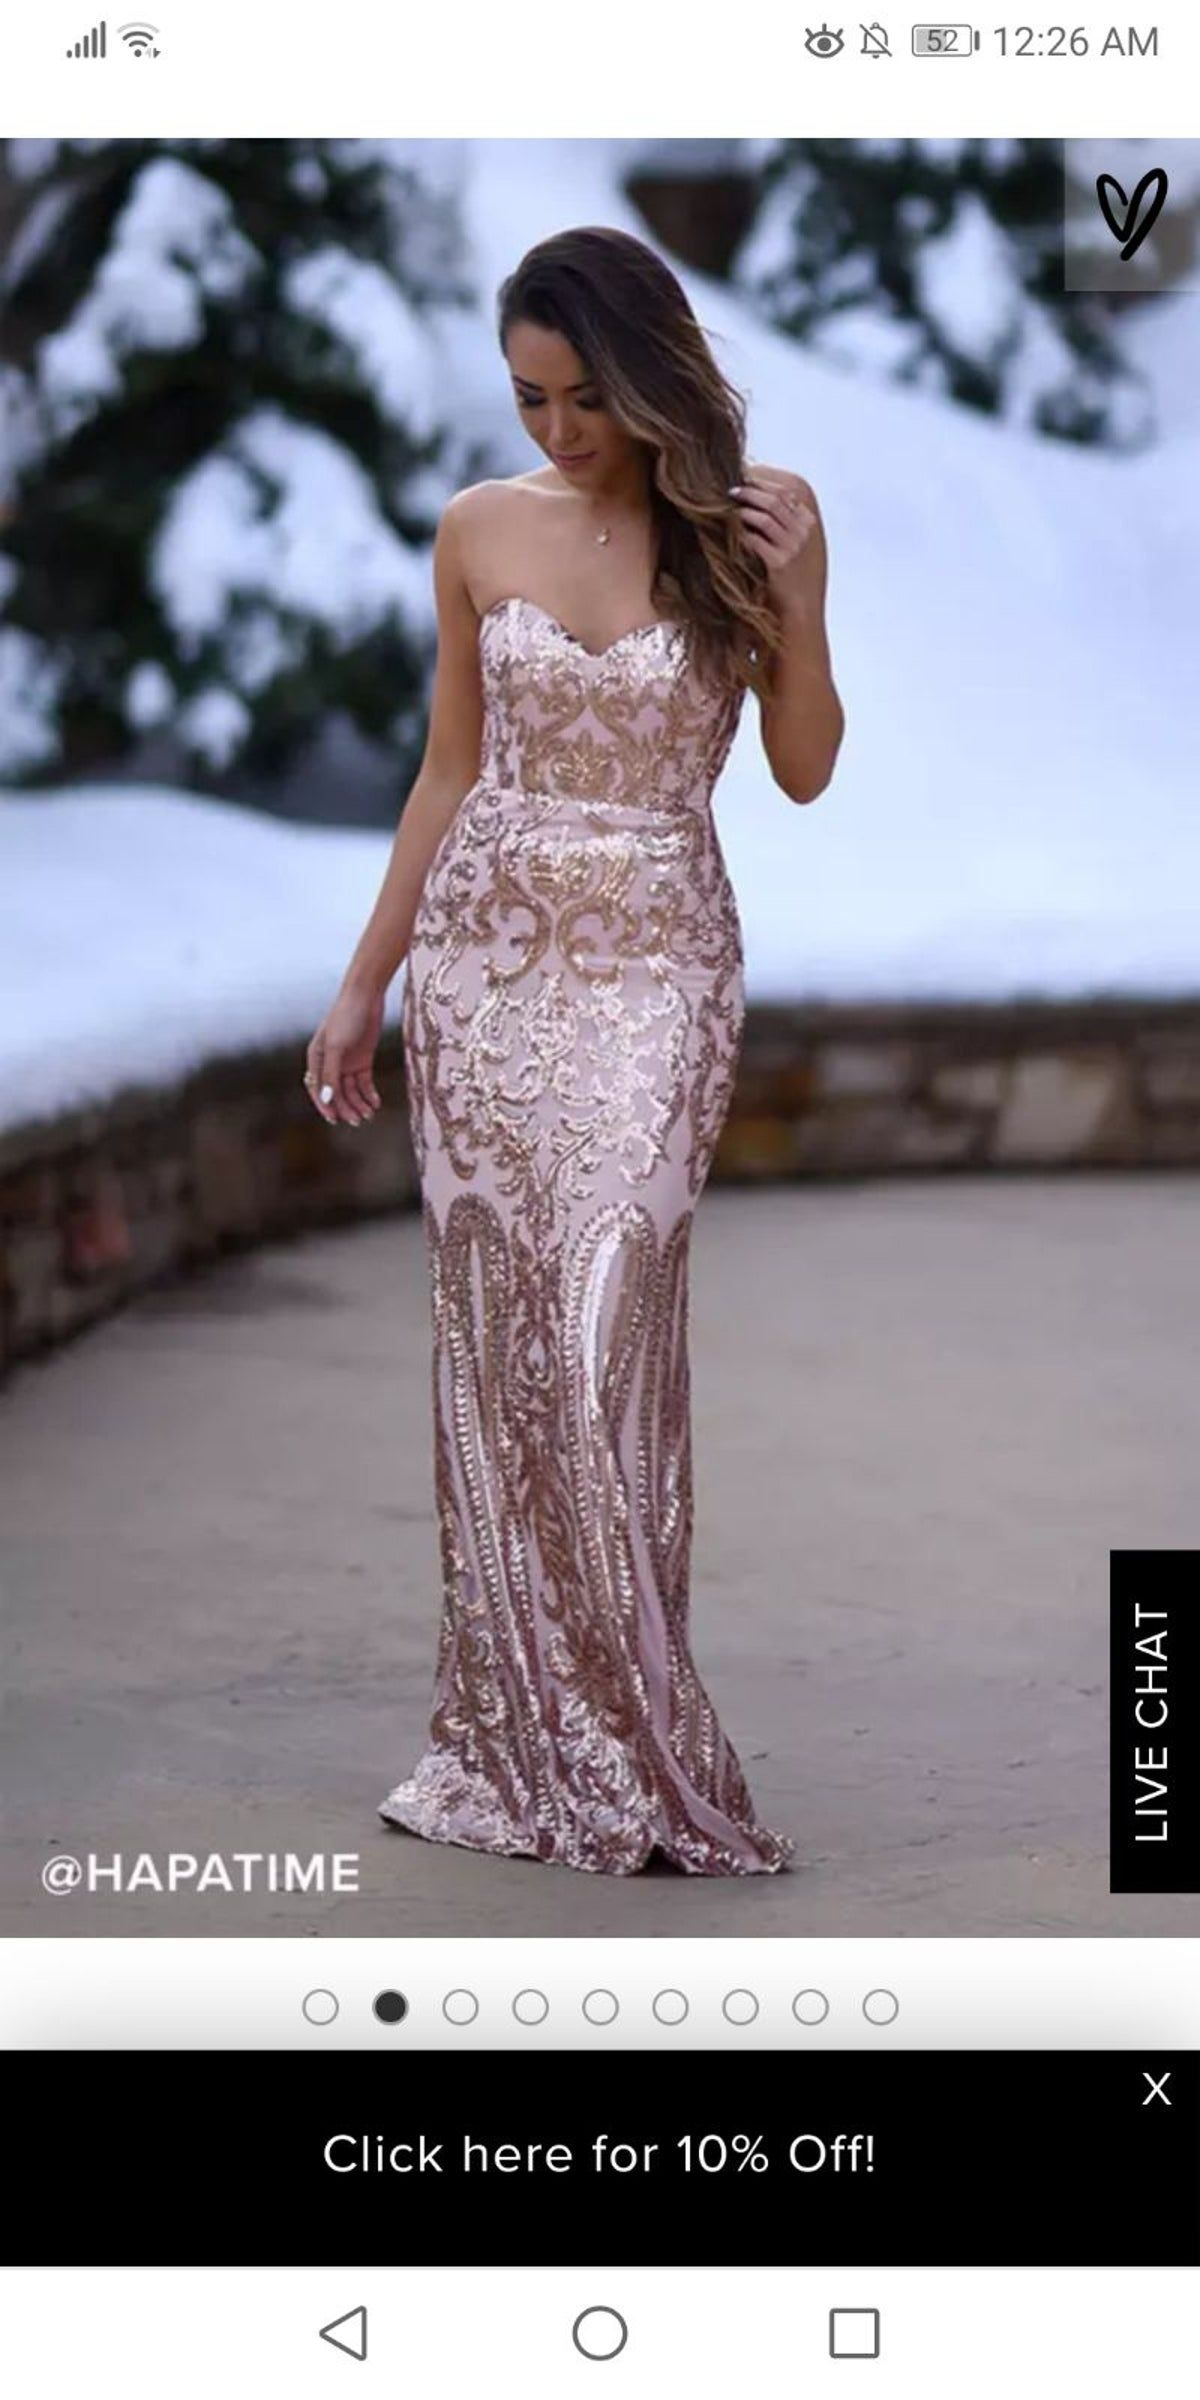 Pin By Kameisha Anthony On Products Maid Of Honour Dresses Red Lace Prom Dress Rose Gold Bridesmaid Dress [ 2400 x 1200 Pixel ]